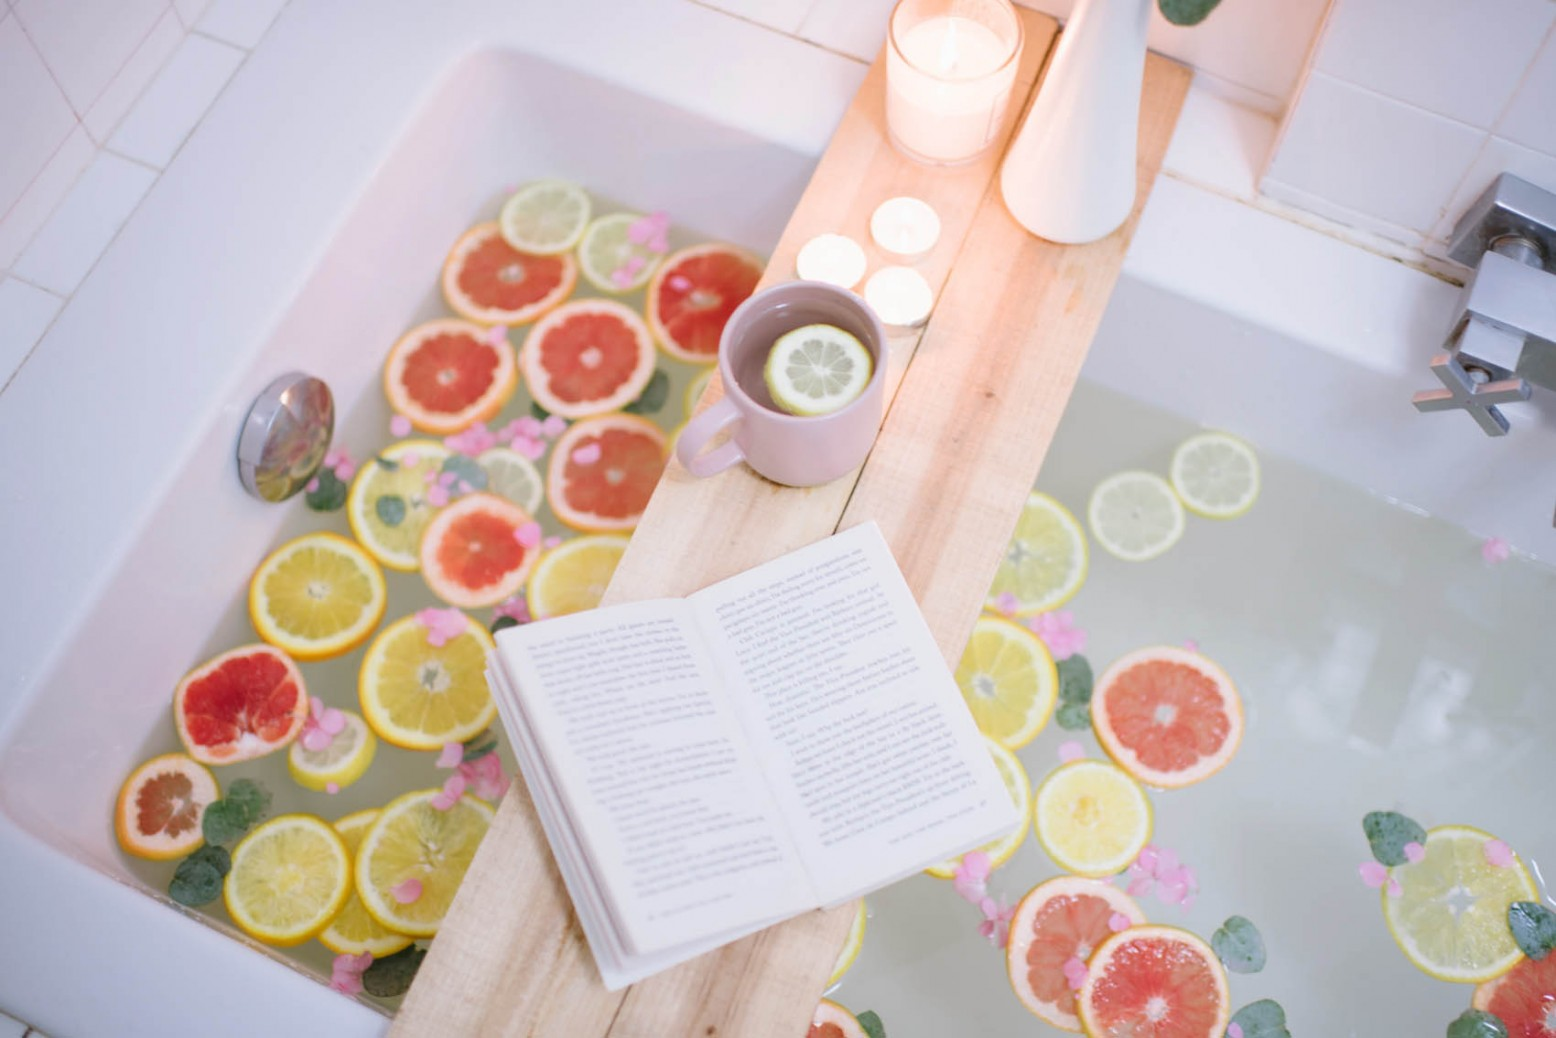 DIY modern light colored wooden tray